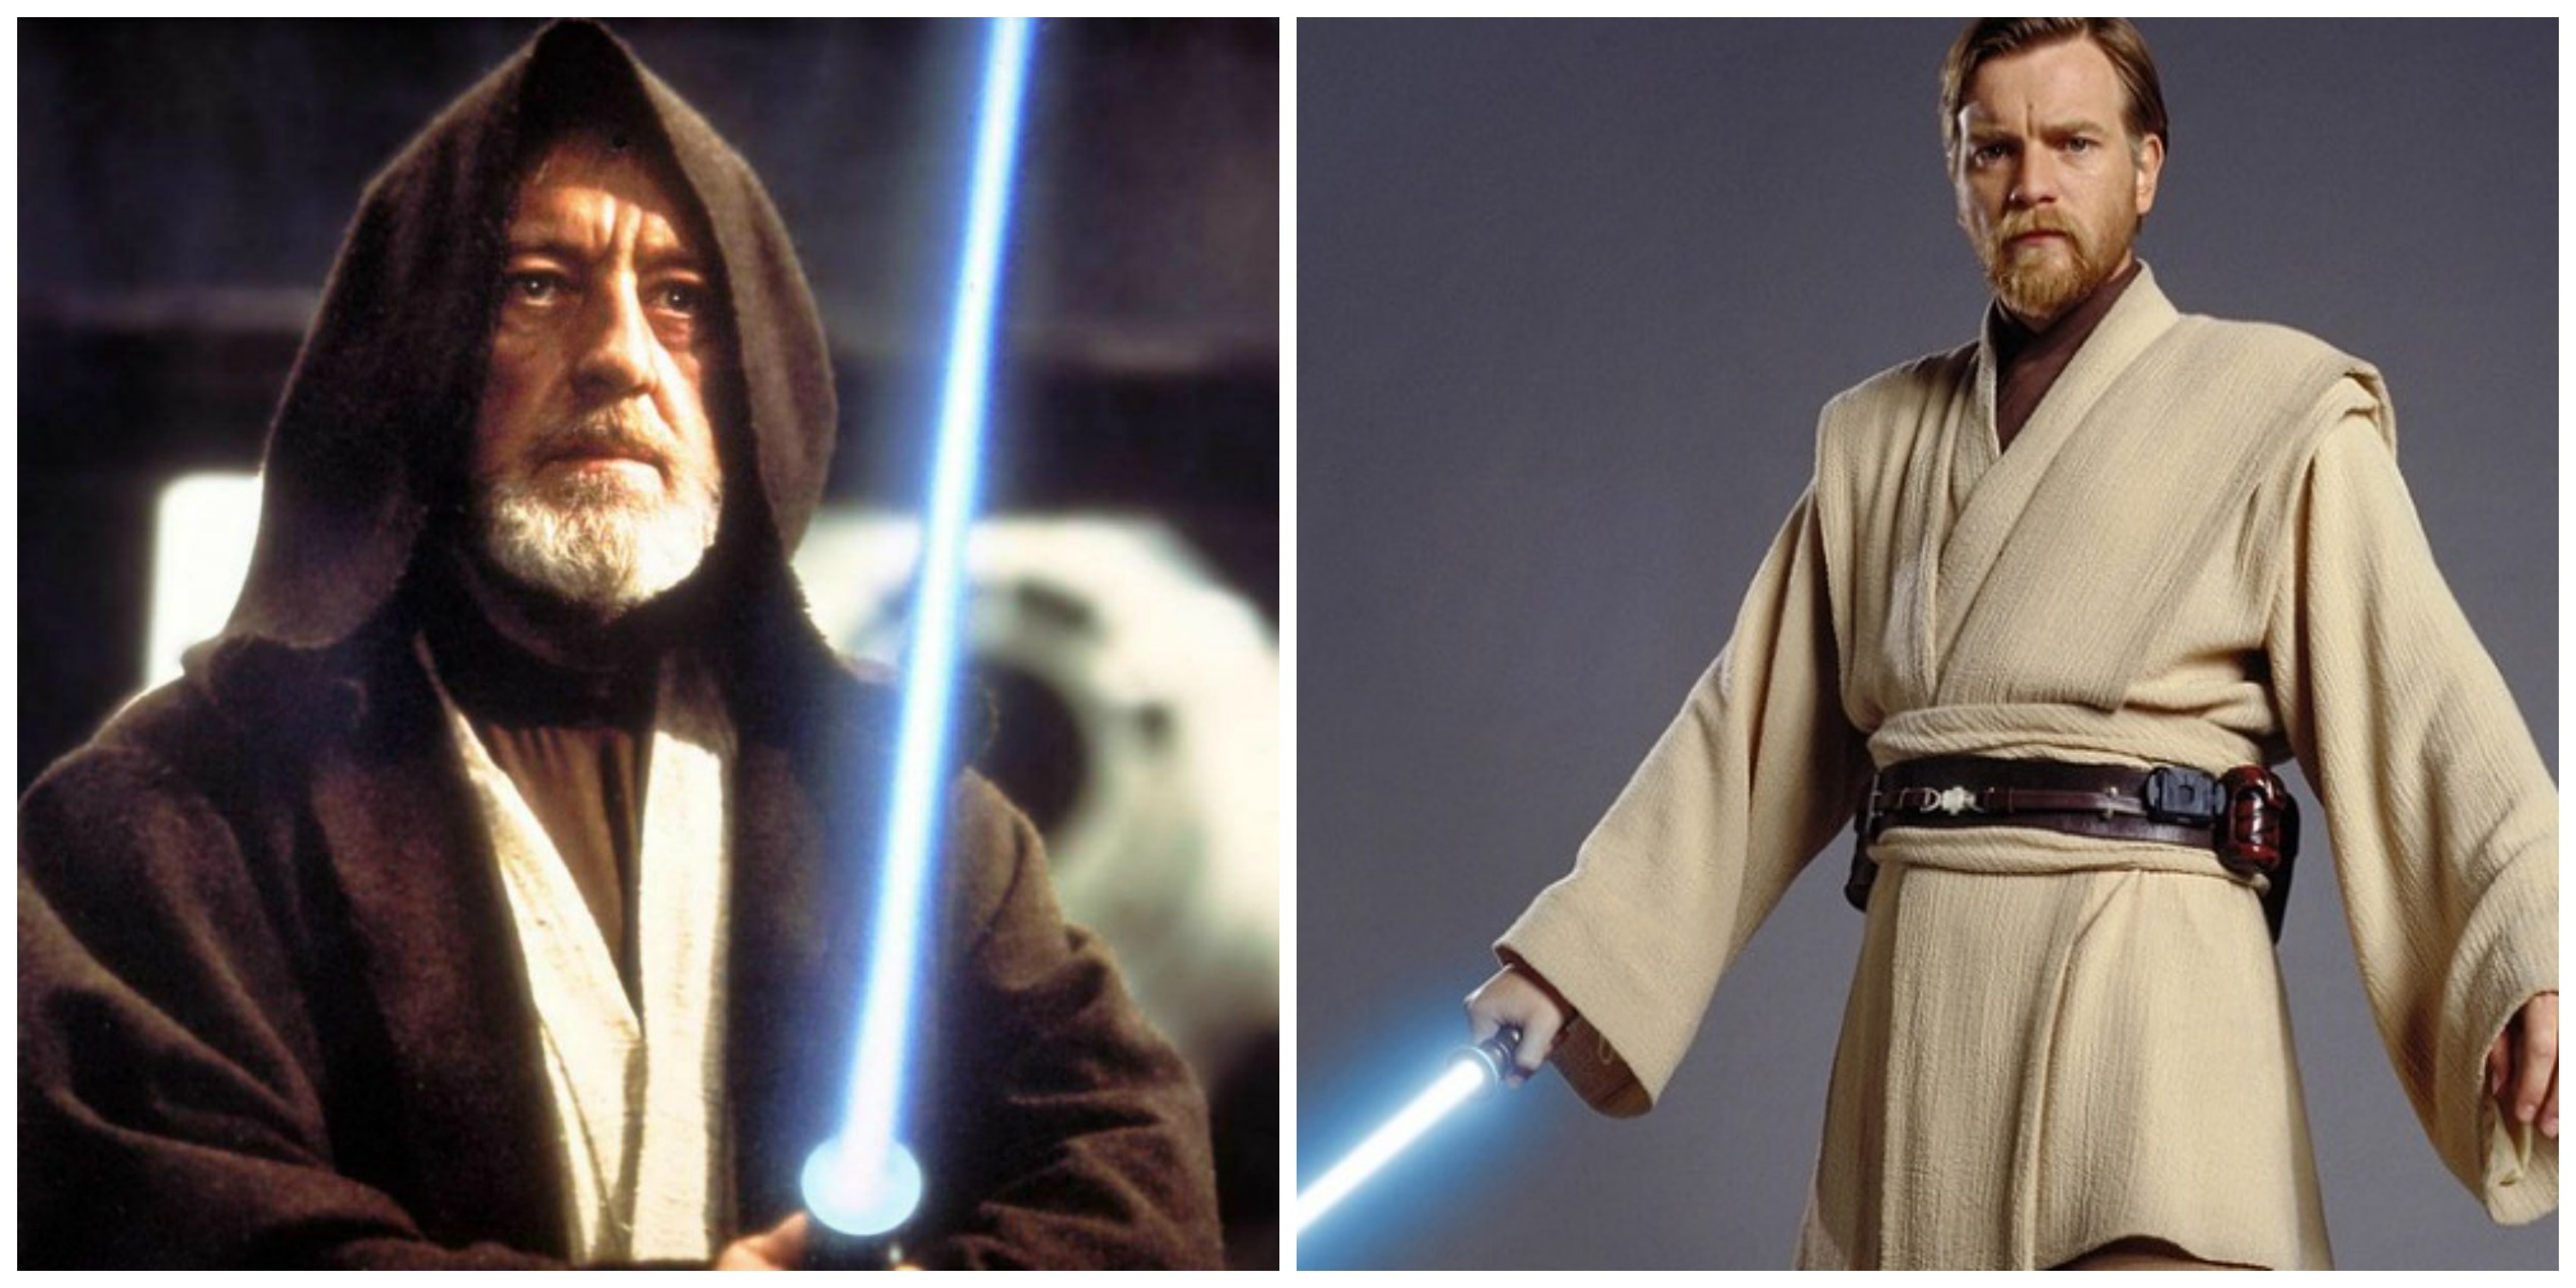 New 'Star Wars' Spinoff Focusing On Obi-Wan Kenobi Being Developed